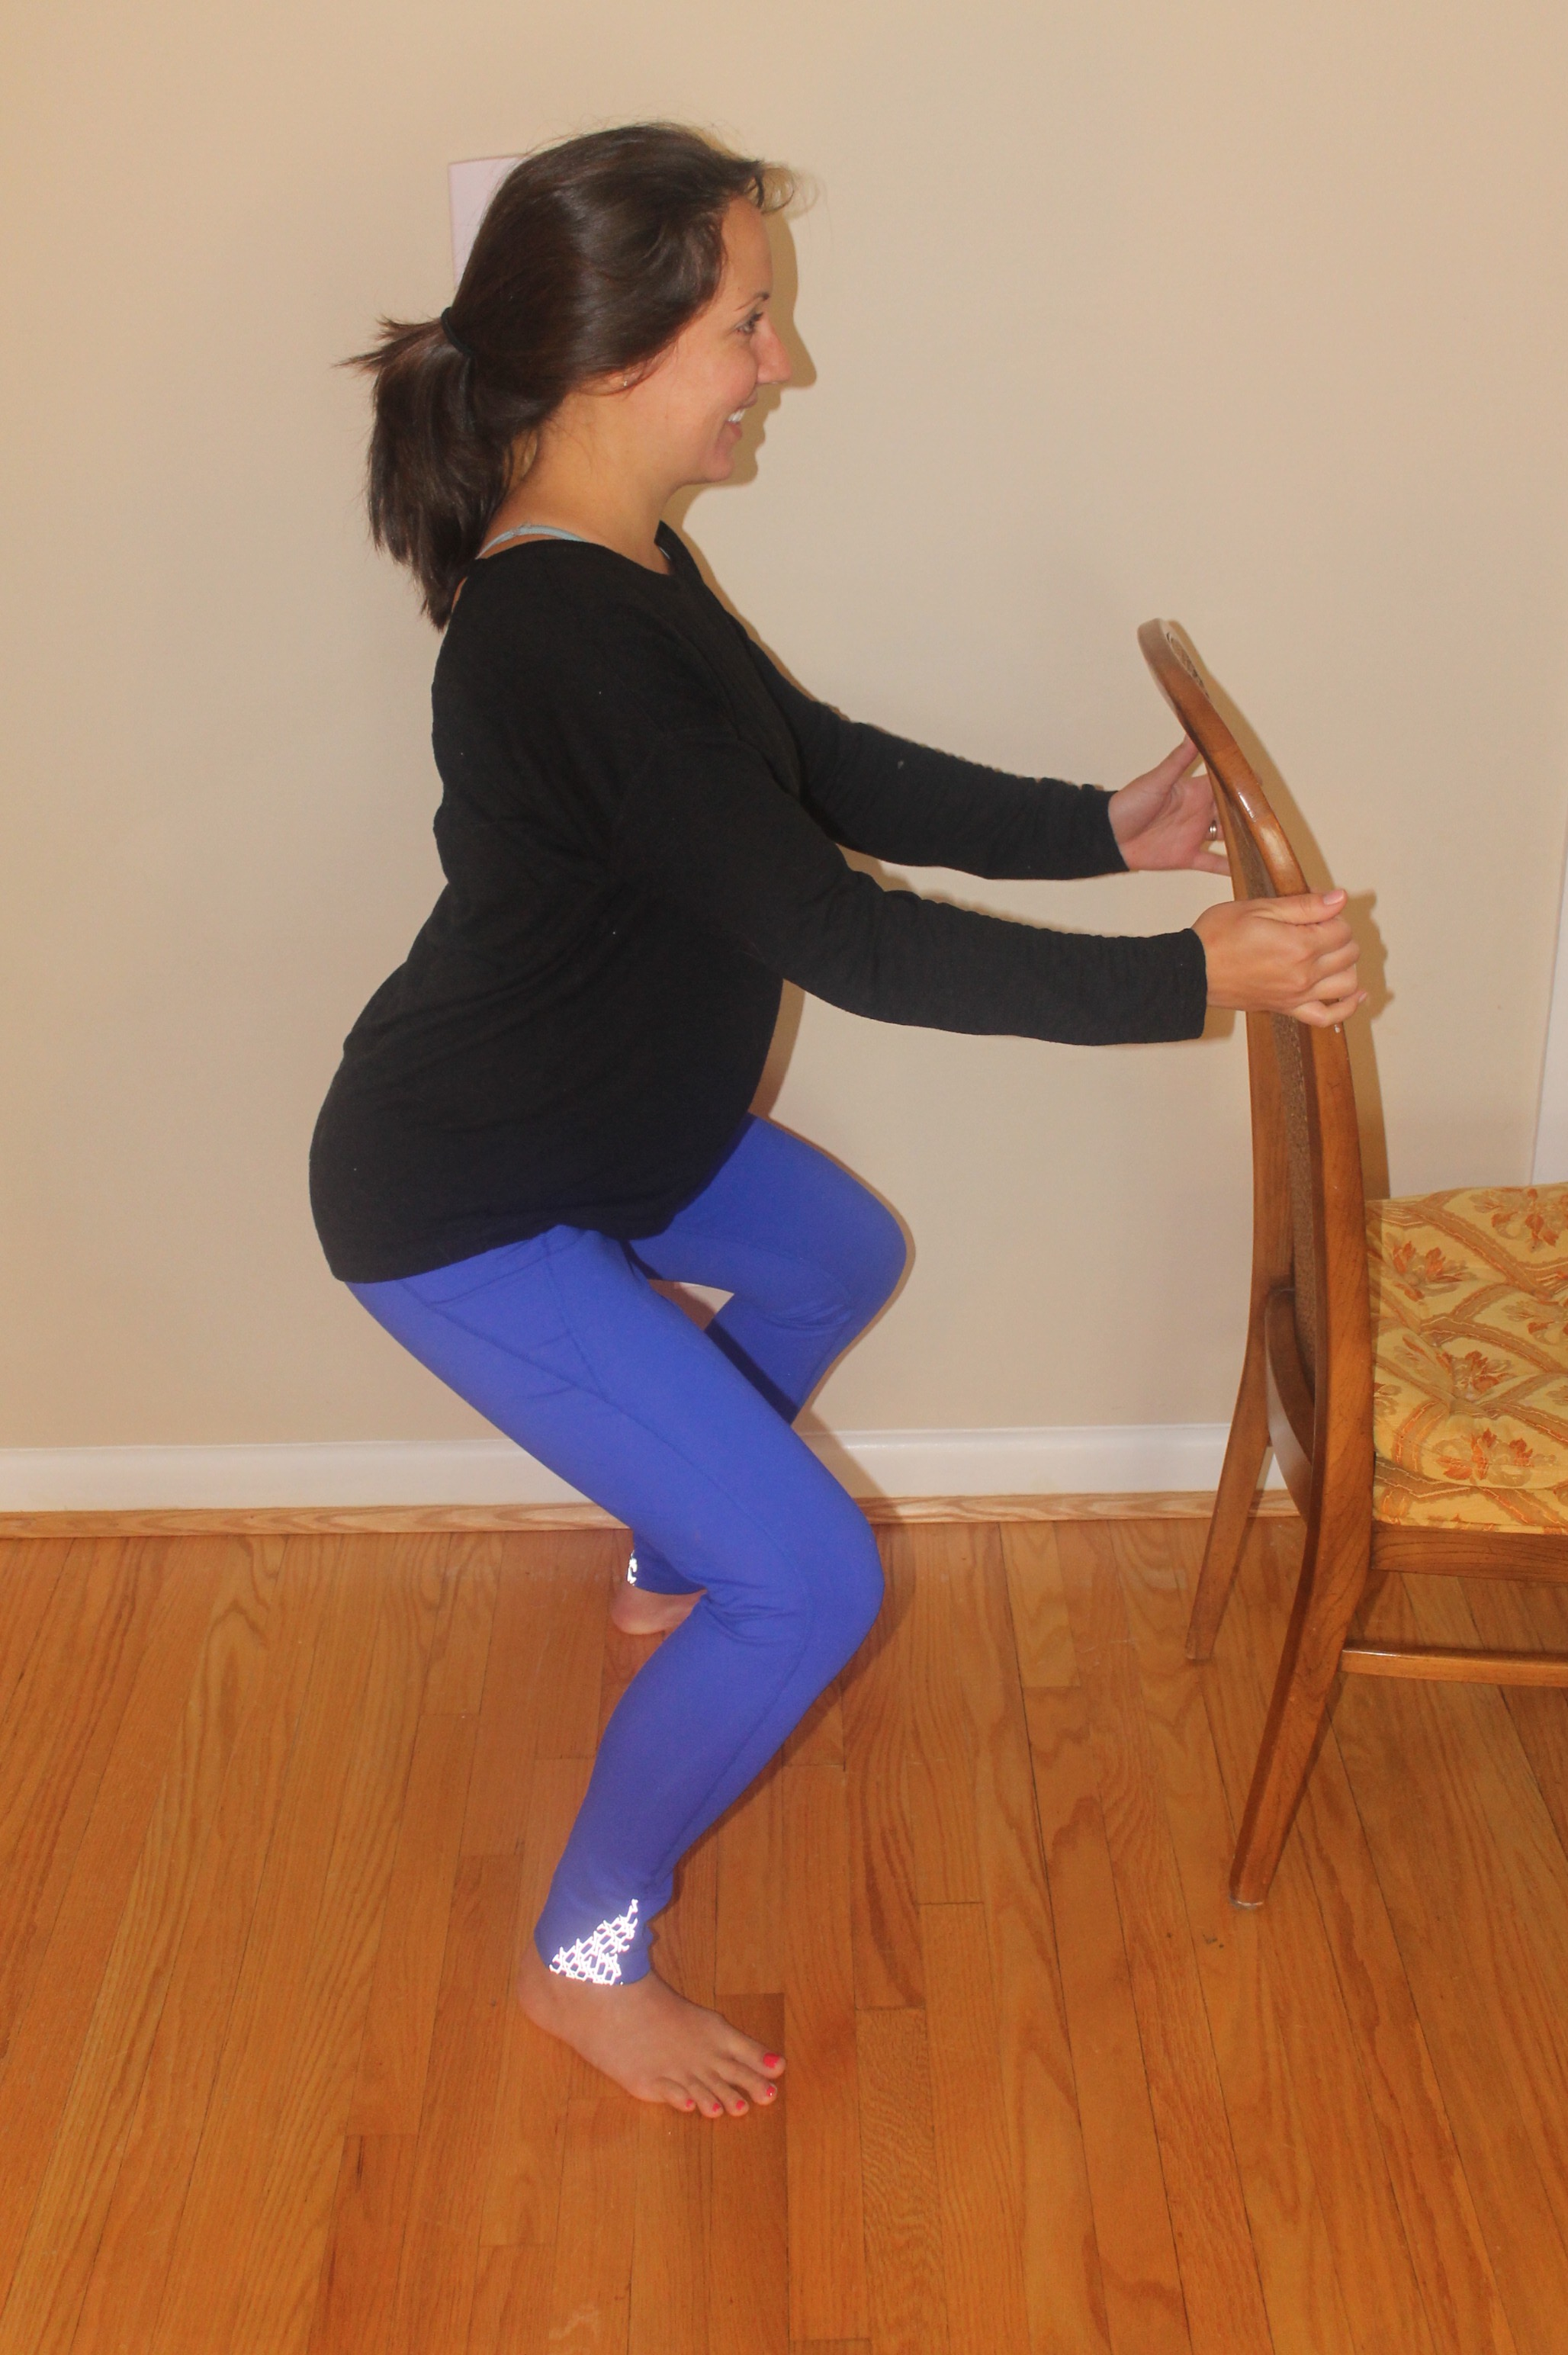 figure 3: Dr. Heppe, 30 weeks pregnant, using a chair for a sumo squat.